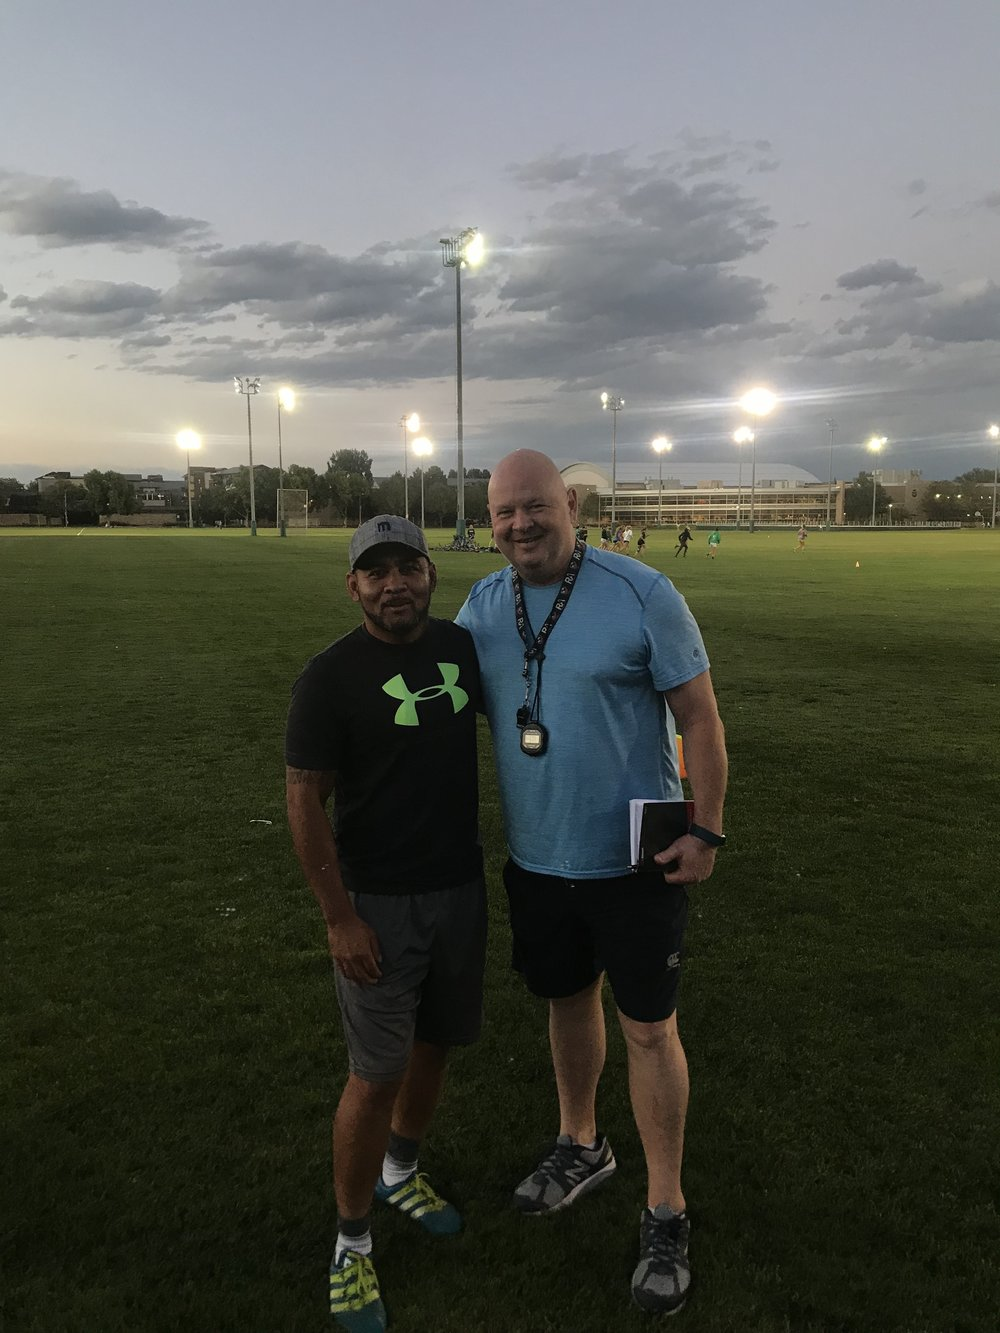 Ram Rugby Coaching Staff: - Pictured: Mose Timoteo (Left) and Sean O'Leary (Right)With 32 USA 15s National team appearances and 28 international 7s tournament appearances for the USA, Coach Mose Timeoteo is deeply ingrained in the player's portion of USA Rugby. Recently he has transitioned into coaching, spending years with Golden Gate Rugby Club in San Francisco and the Glendale Raptors Men's and Women's team. Ram Rugby has been lucky enough to bring him to the forefront of the program as Head Coach and backs specialist. Coach Sean O' Leary is heavily rooted in the Eagles Impact Rugby Academy (EIRA) and has recently been a consultant coach for Regis Jesuit High School. He is no stranger to collegiate rugby as prior to his work with Regis, O'Learywas the Head Coach and Director of Rugby at the University of Notre Dame from 2007-2015. O'Leary has joined Ram Rugby as a forwards specialist.